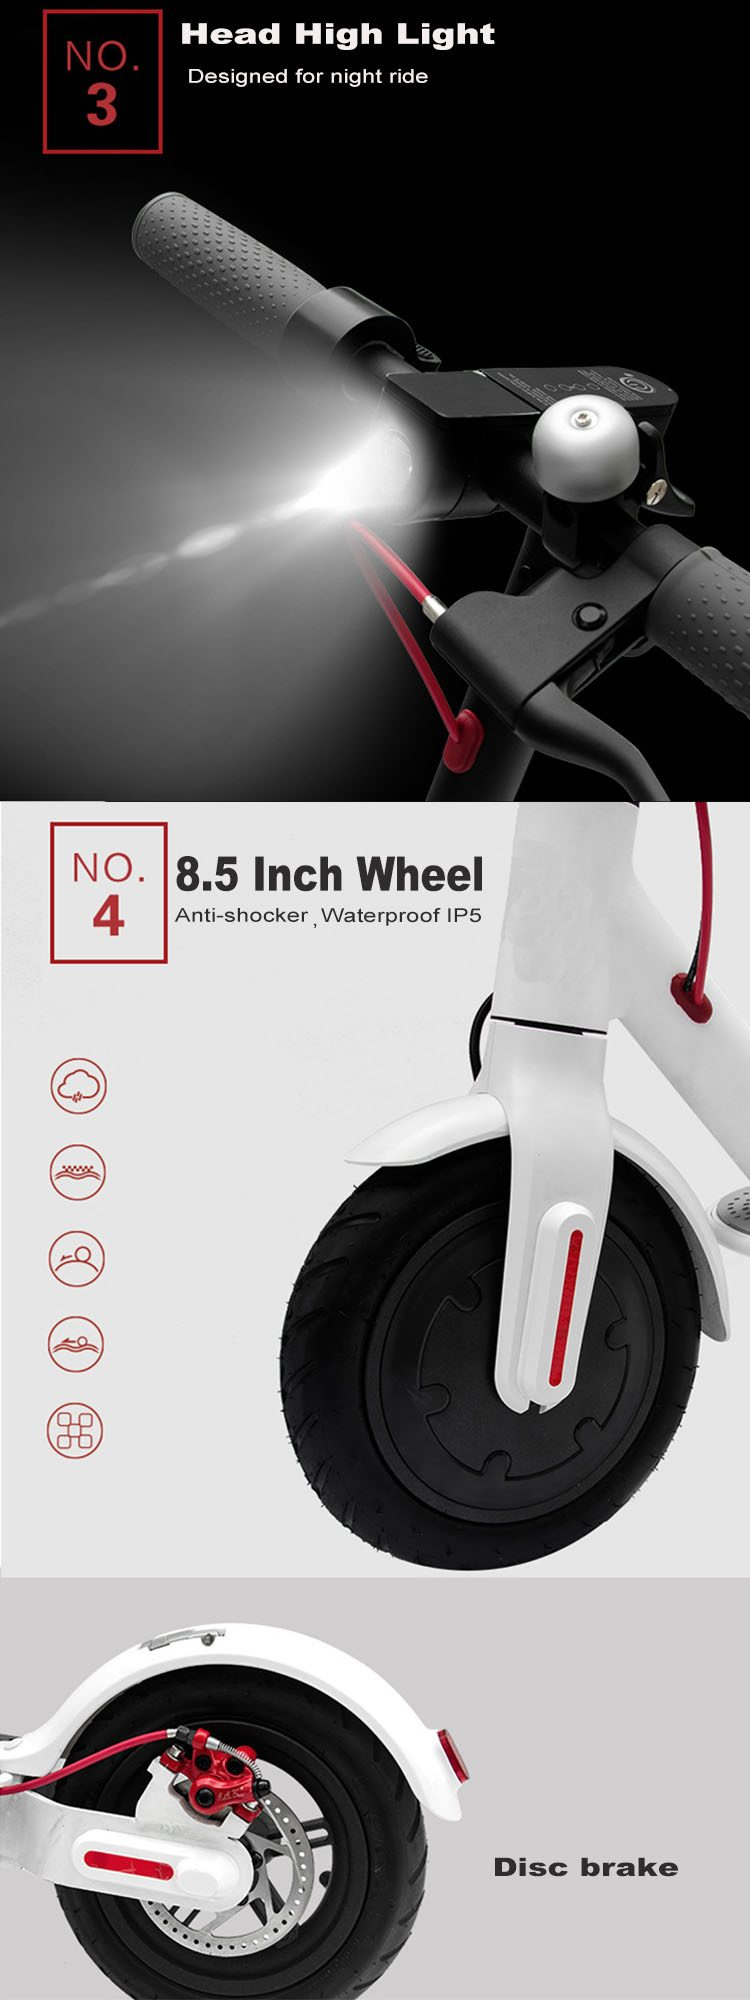 M365 electric scooter supplier